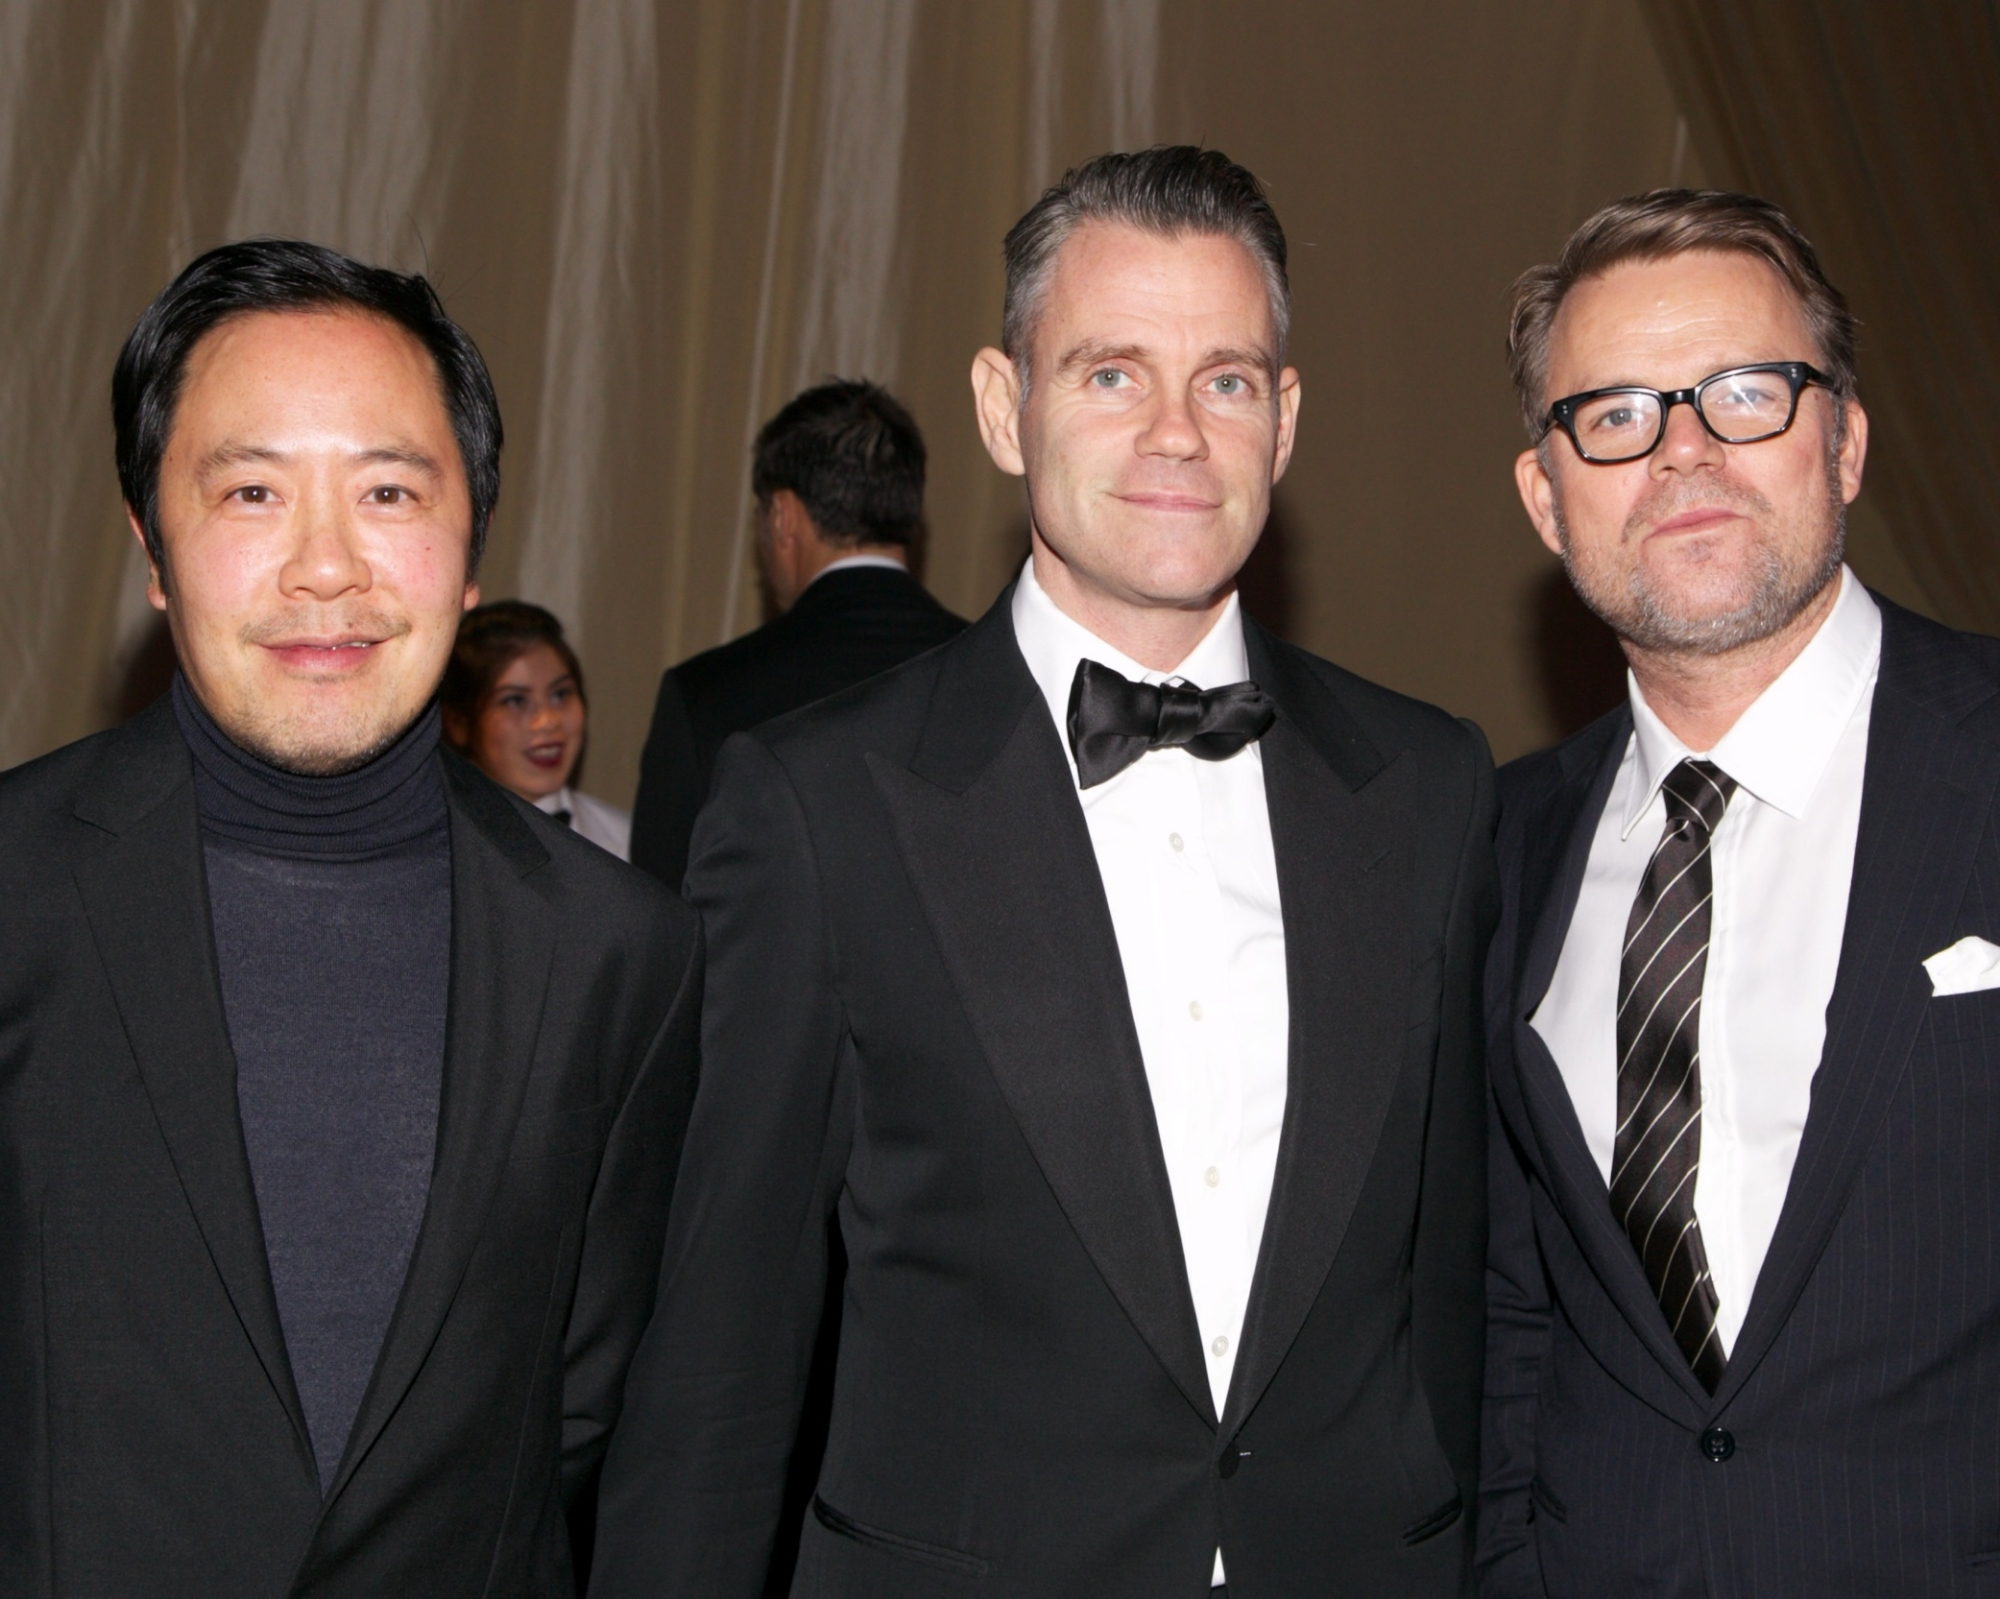 Derek Lam, James Scully, and Jan-Hendrik Schlottmann © 2014 Julie Skarratt Photography Inc./U.S. Fund for UNICEF